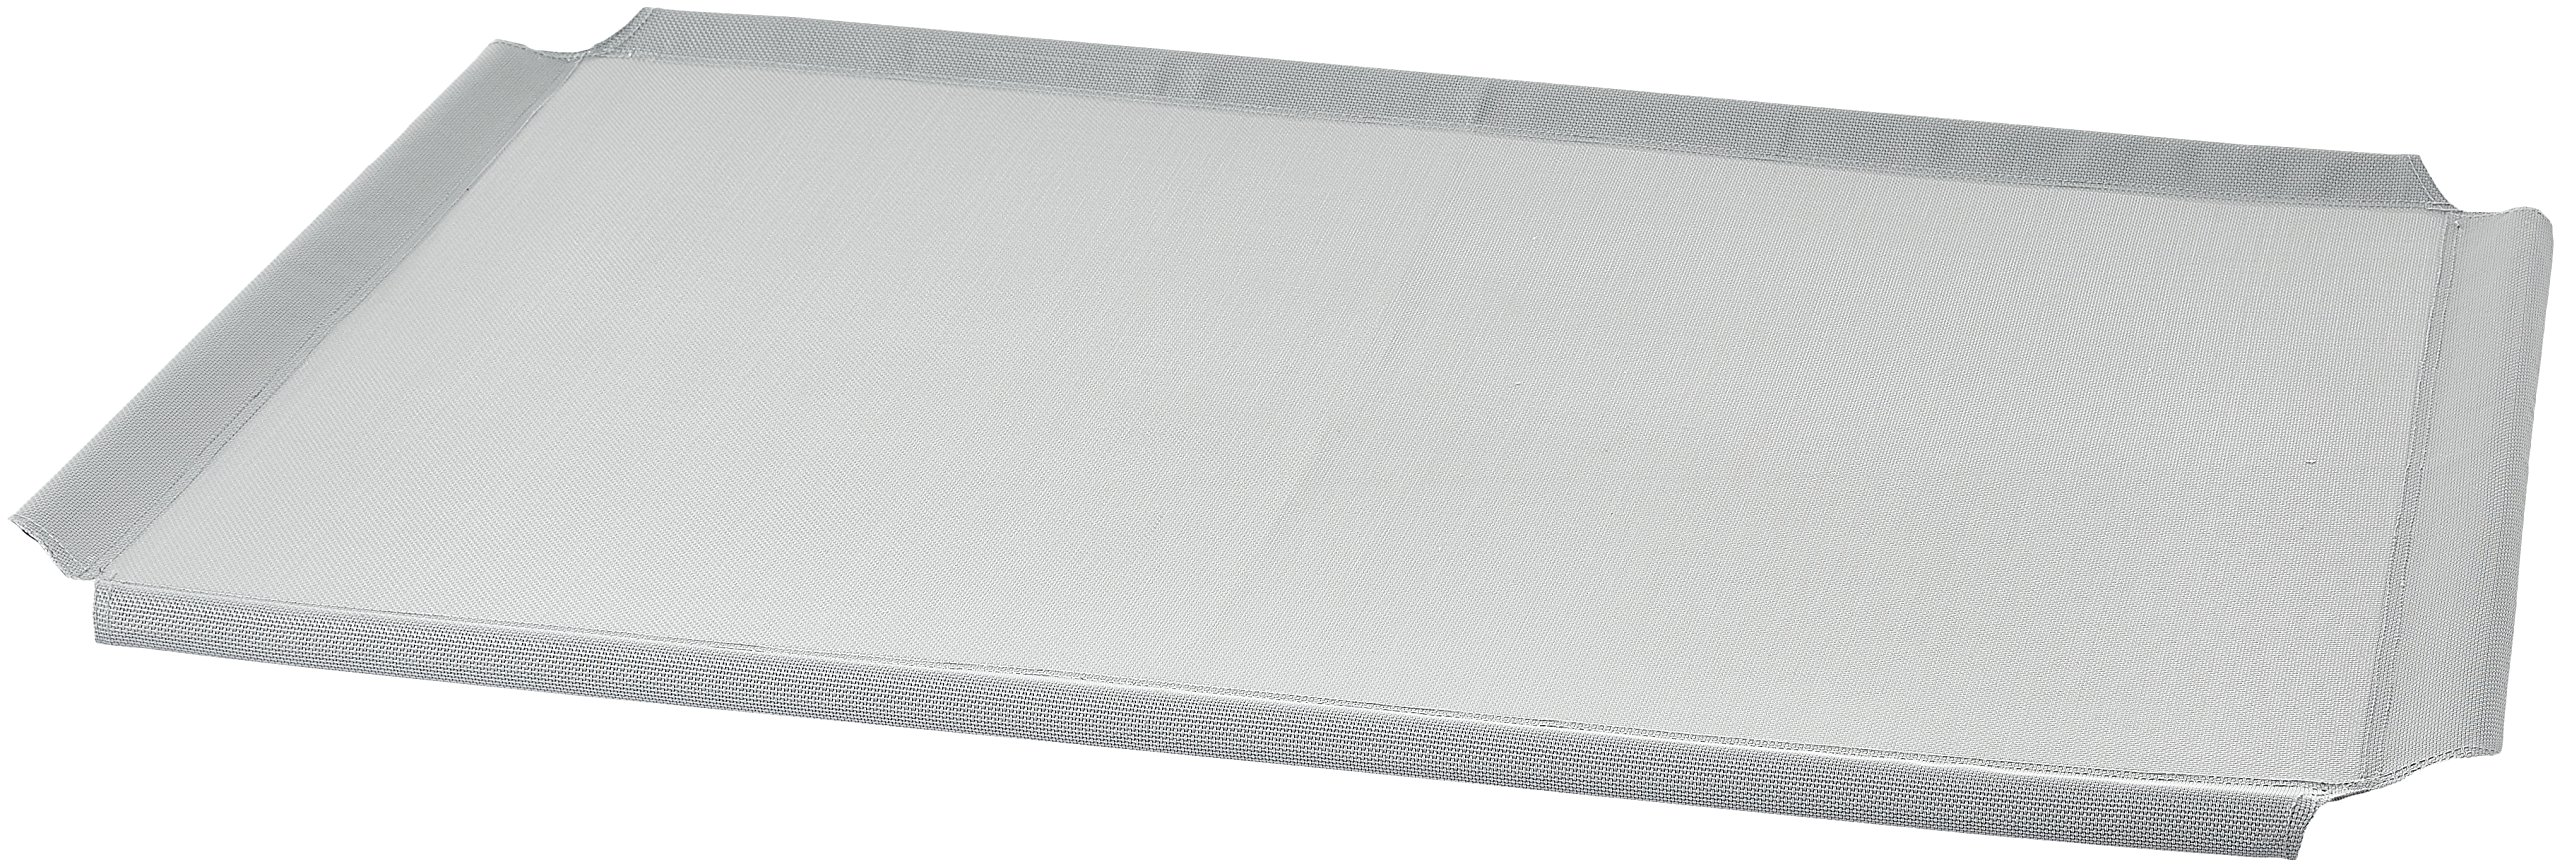 AmazonBasics Elevated Cooling Pet Bed Replacement Cover, L, Grey